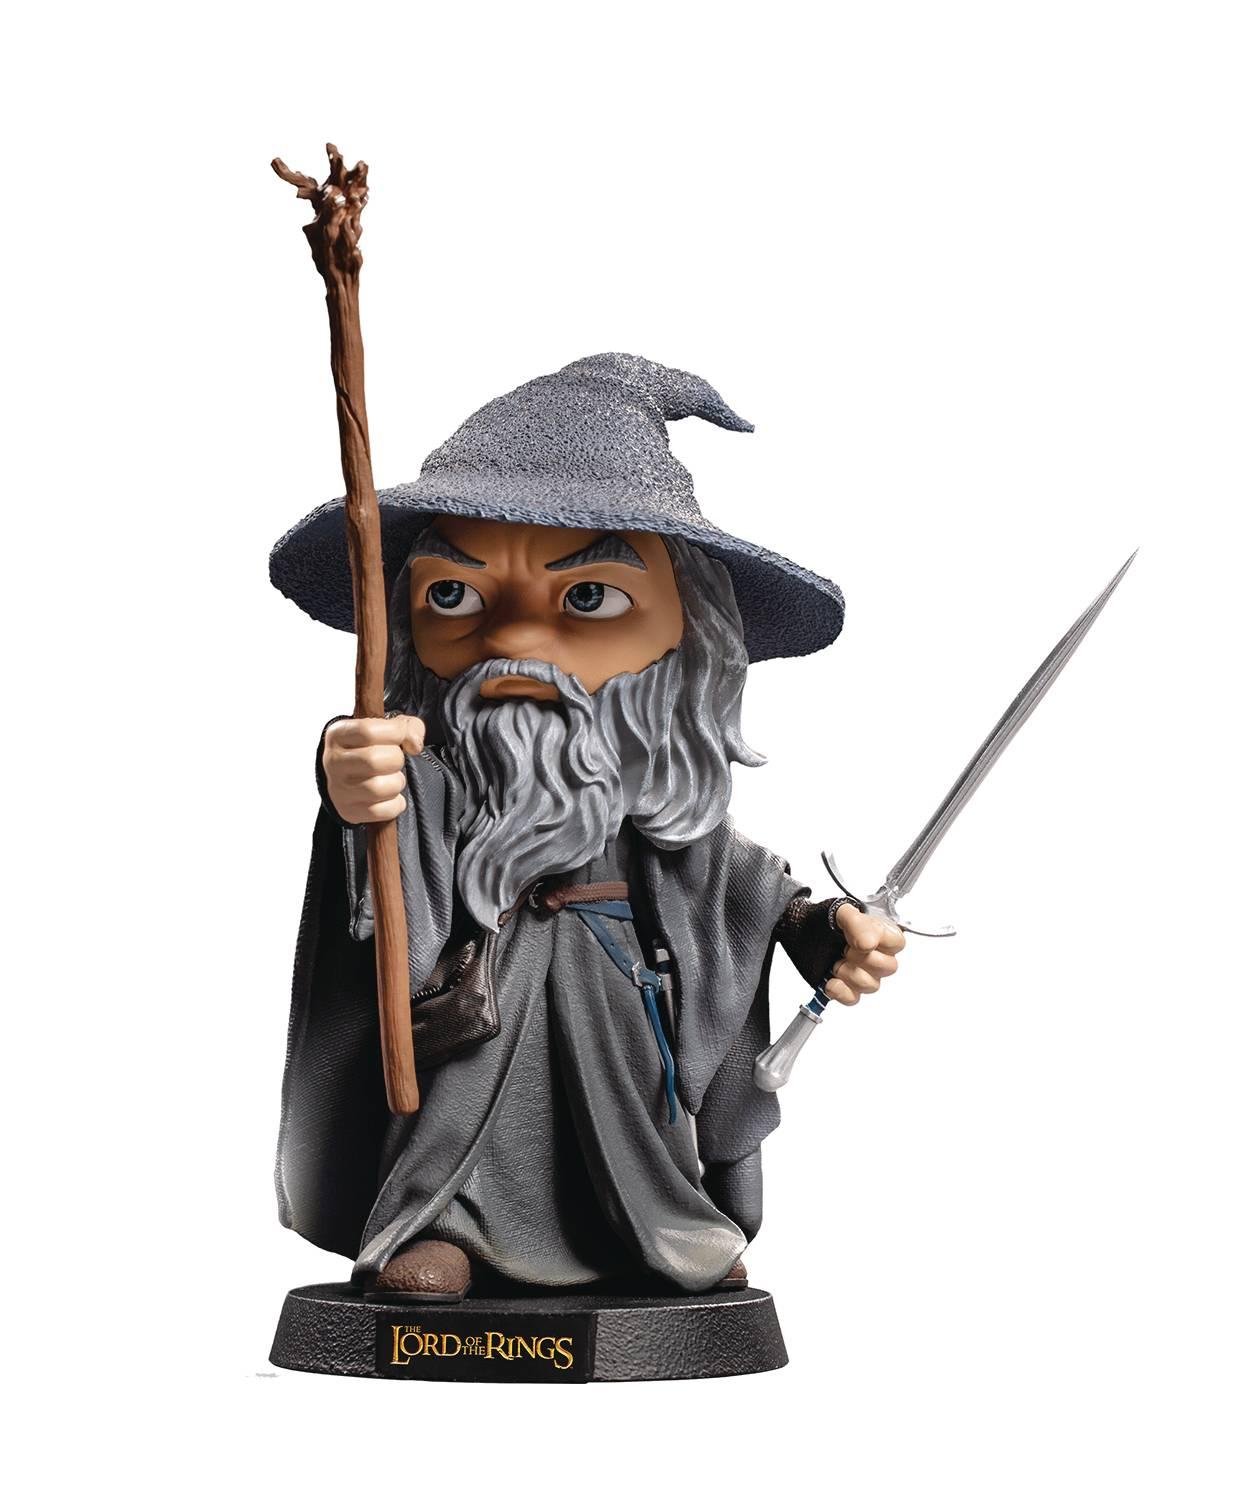 MINICO HEROES LORD OF THE RINGS GANDALF VINYL STATUE